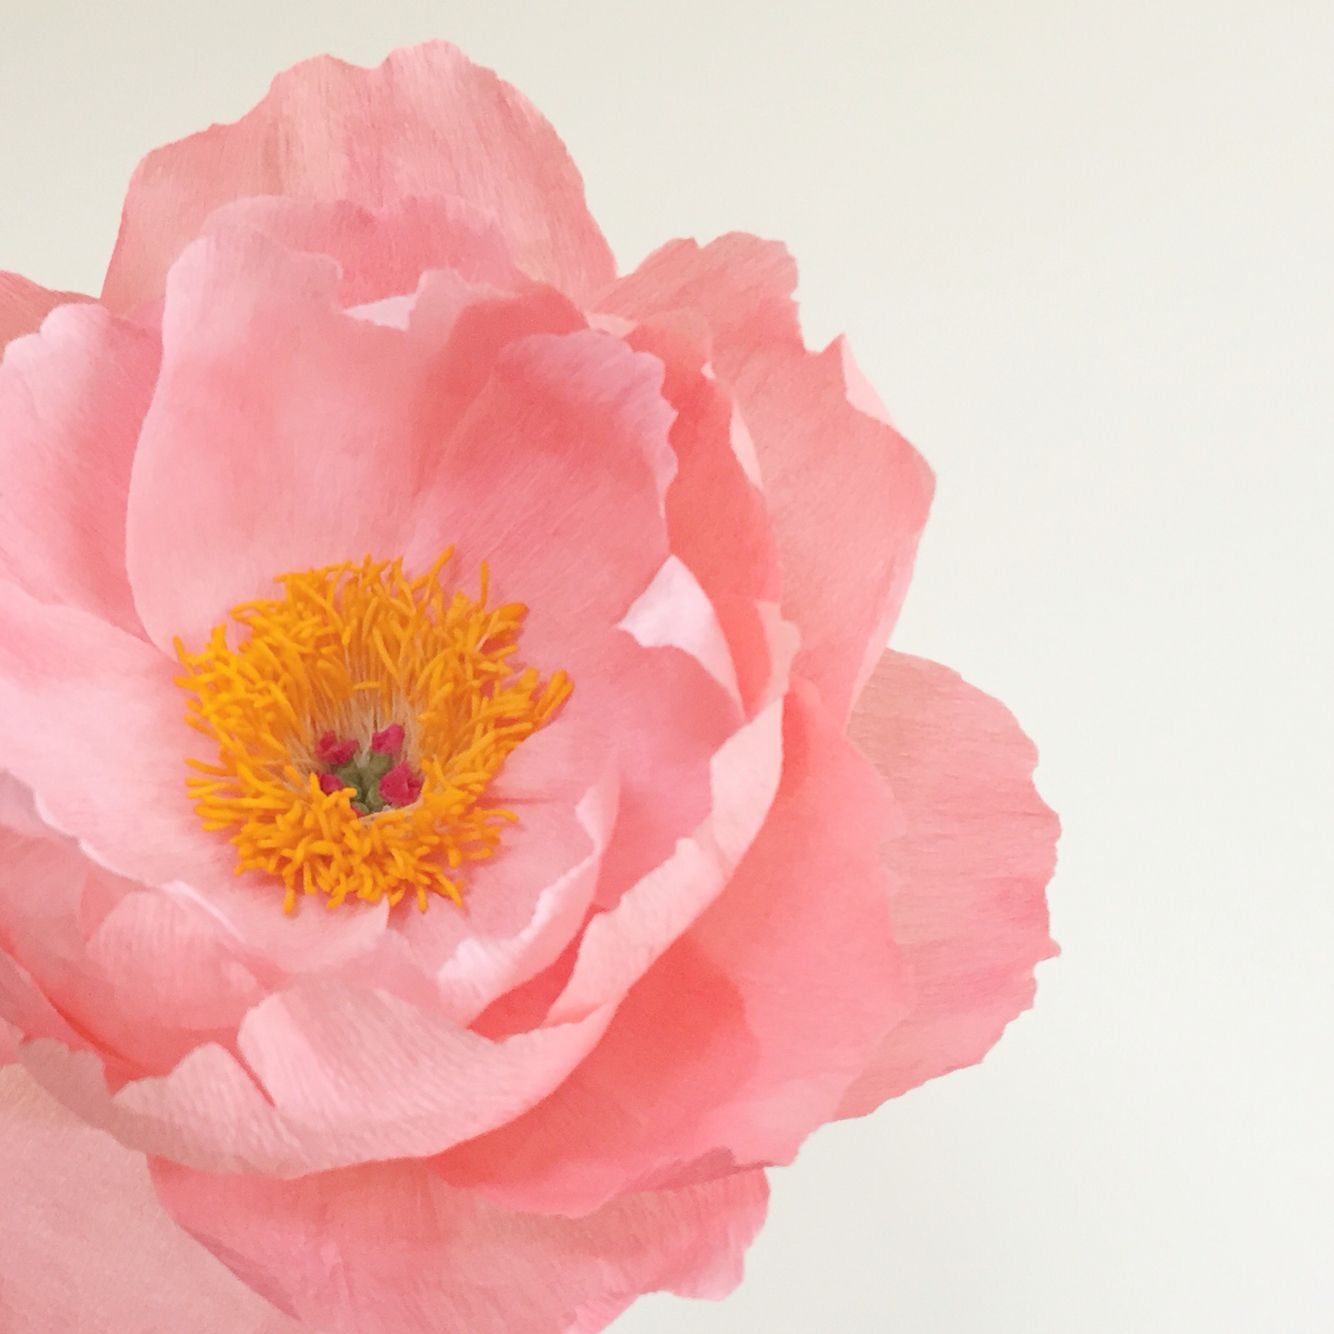 Coral Charm Peony Made Of Crepe Paper Handcrafted By Agnes Soo Of